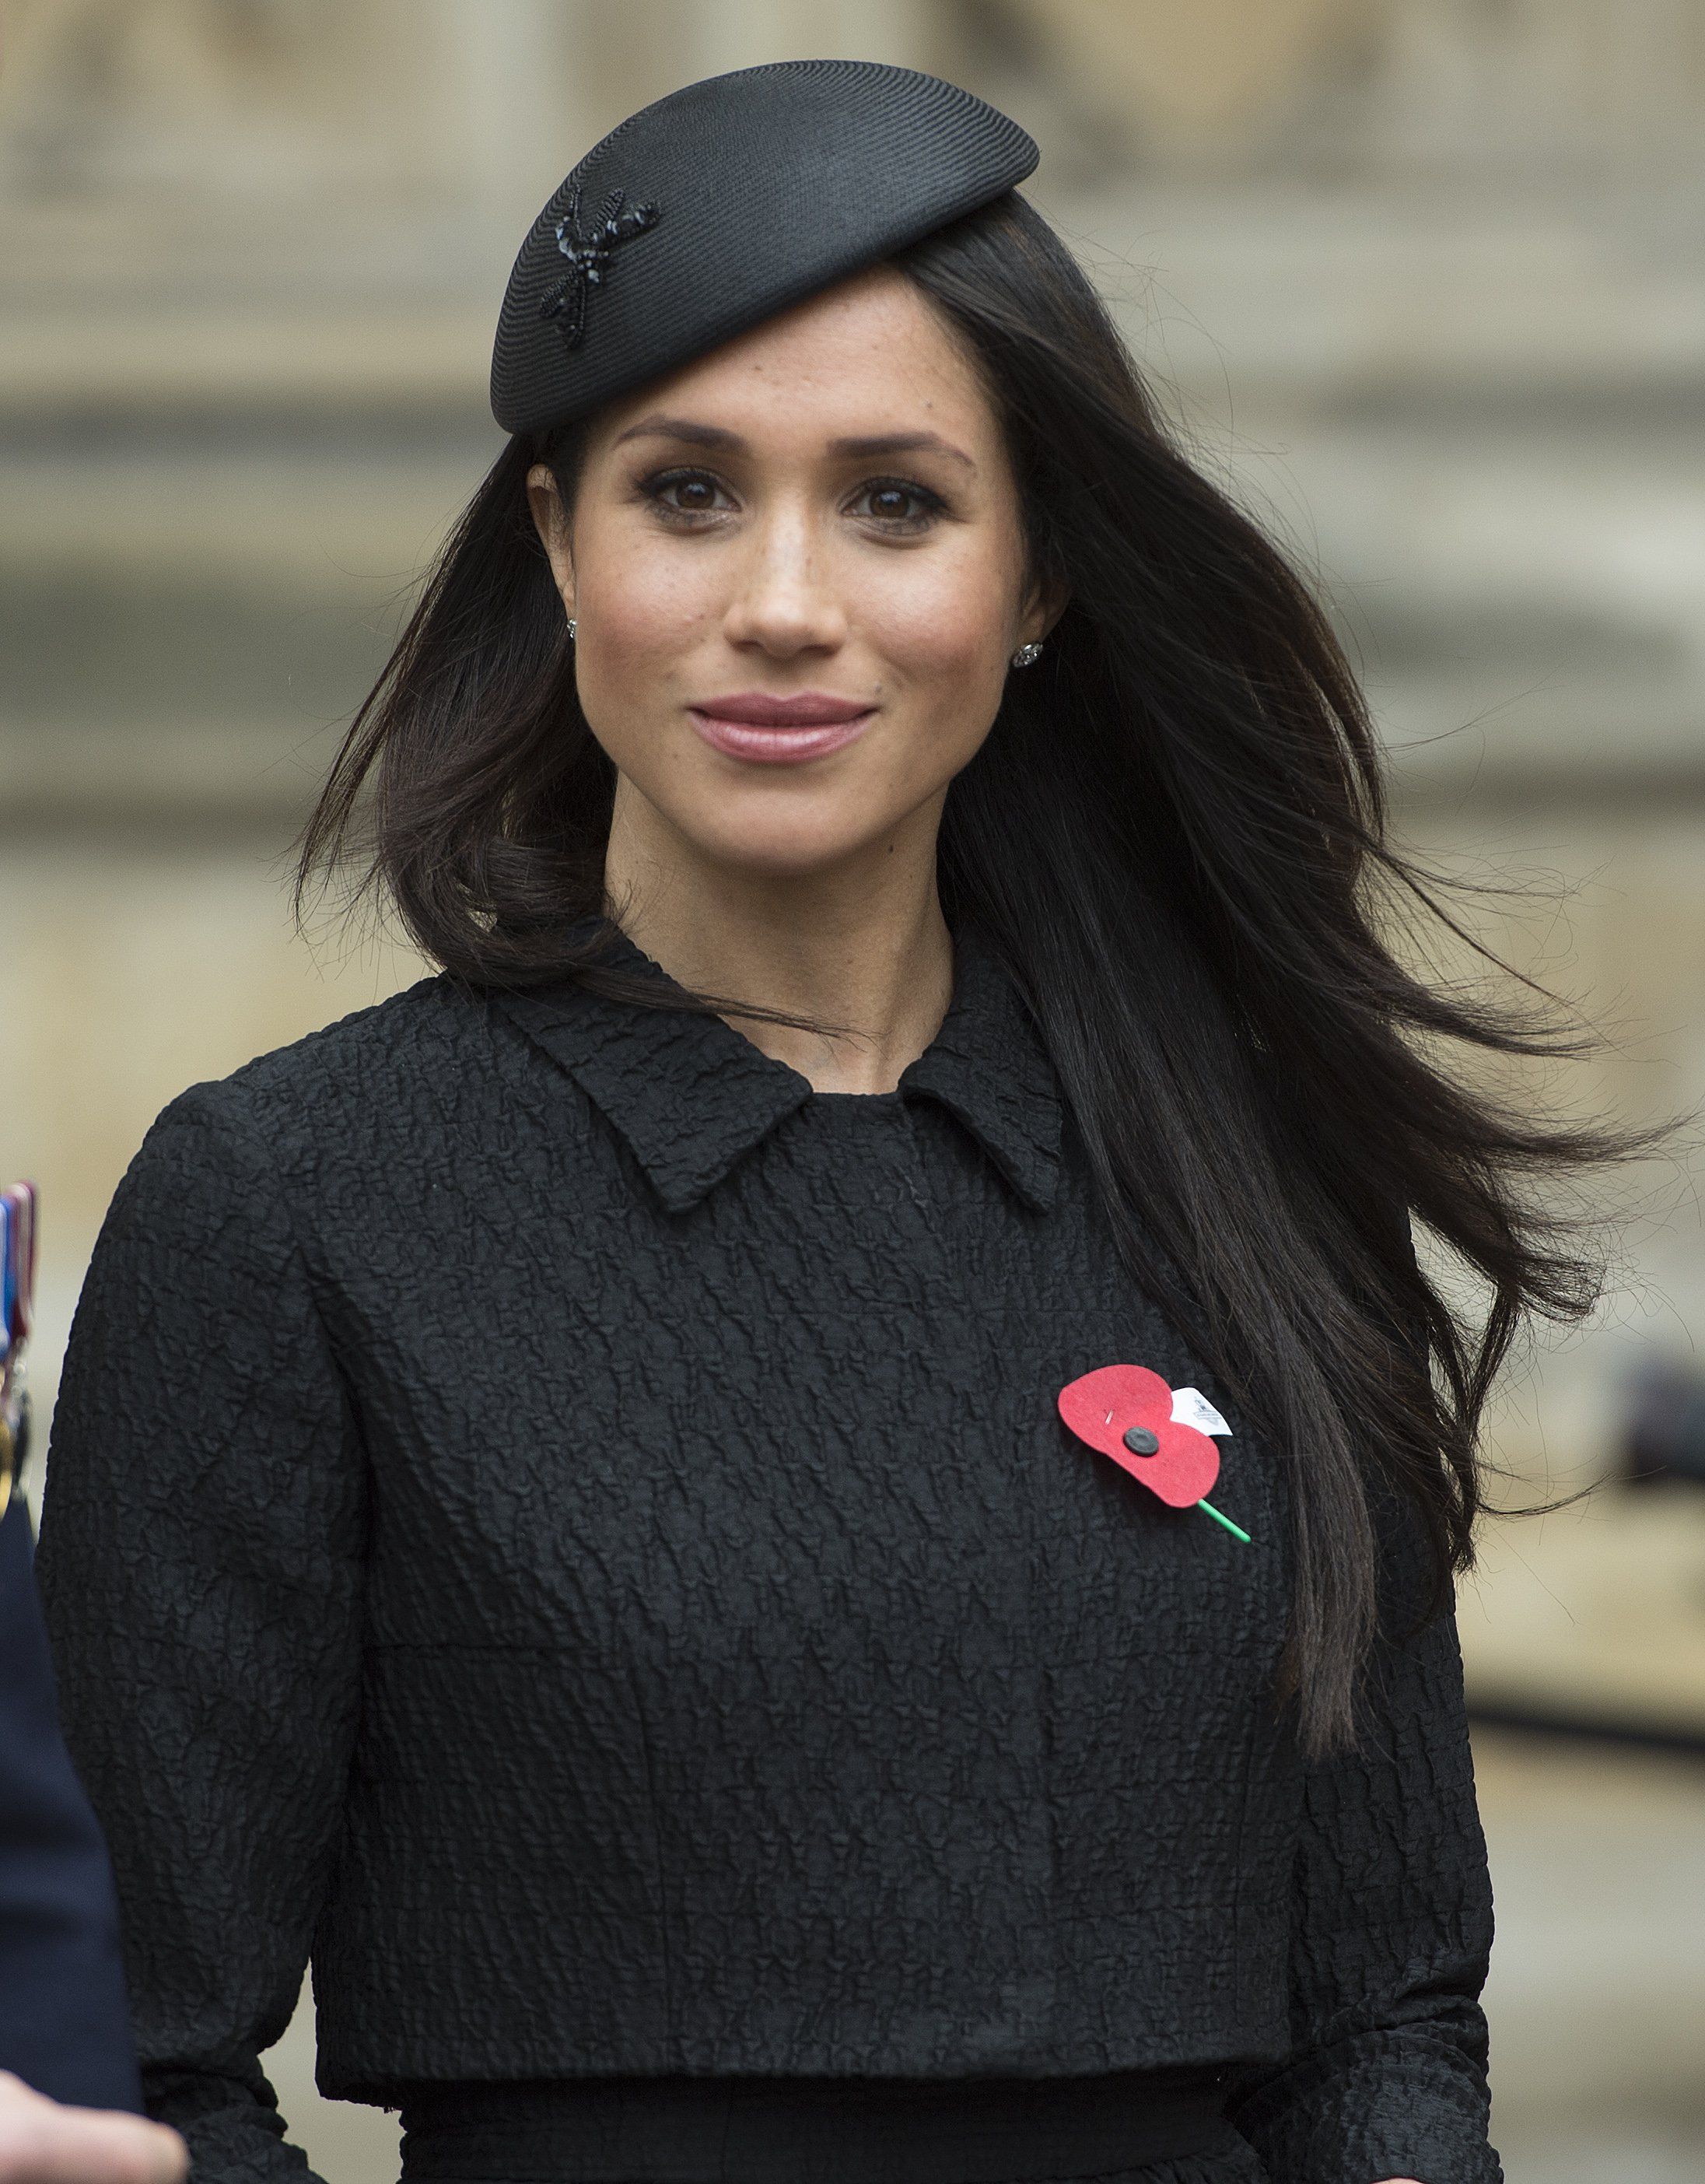 Meghan Markle attends an Anzac Day service at Westminster Abbey on April 25, 2018 in London, England | Photo: Getty Images